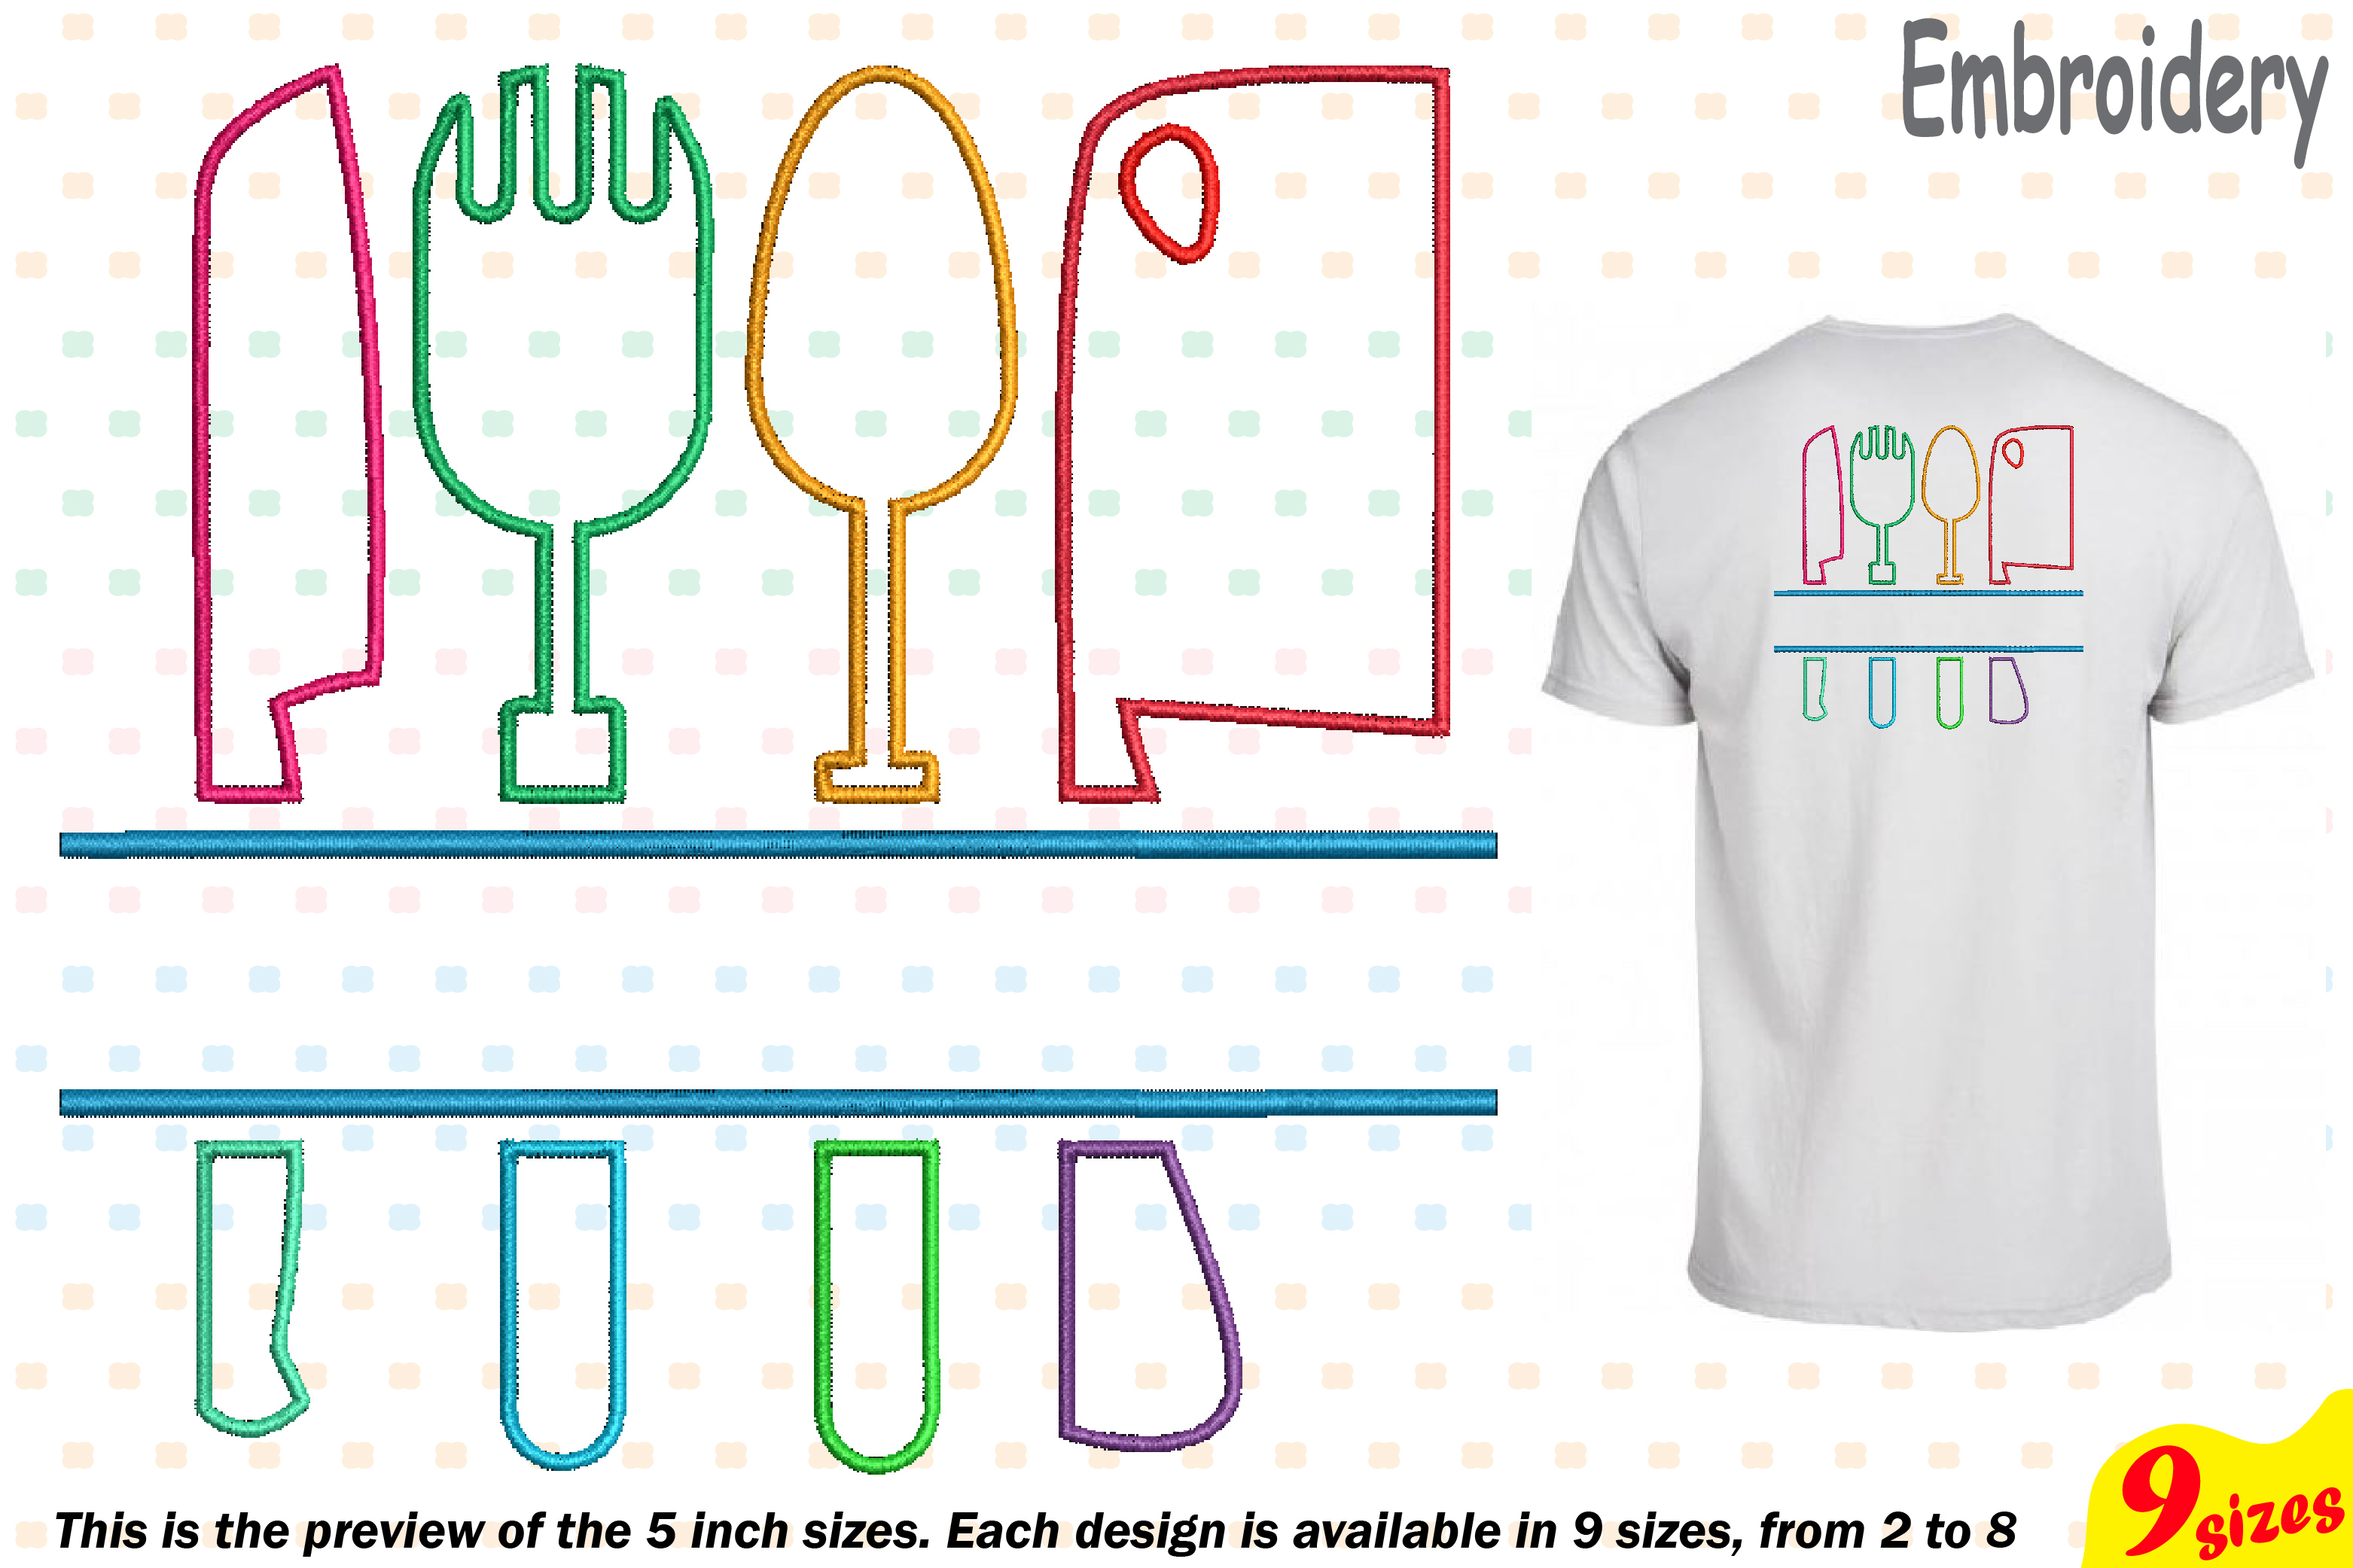 Split Kitchen Embroidery Design Machine Instant Download Commercial Use digital file icon symbol sign Cooking Chef Utensils knife 182b example image 1